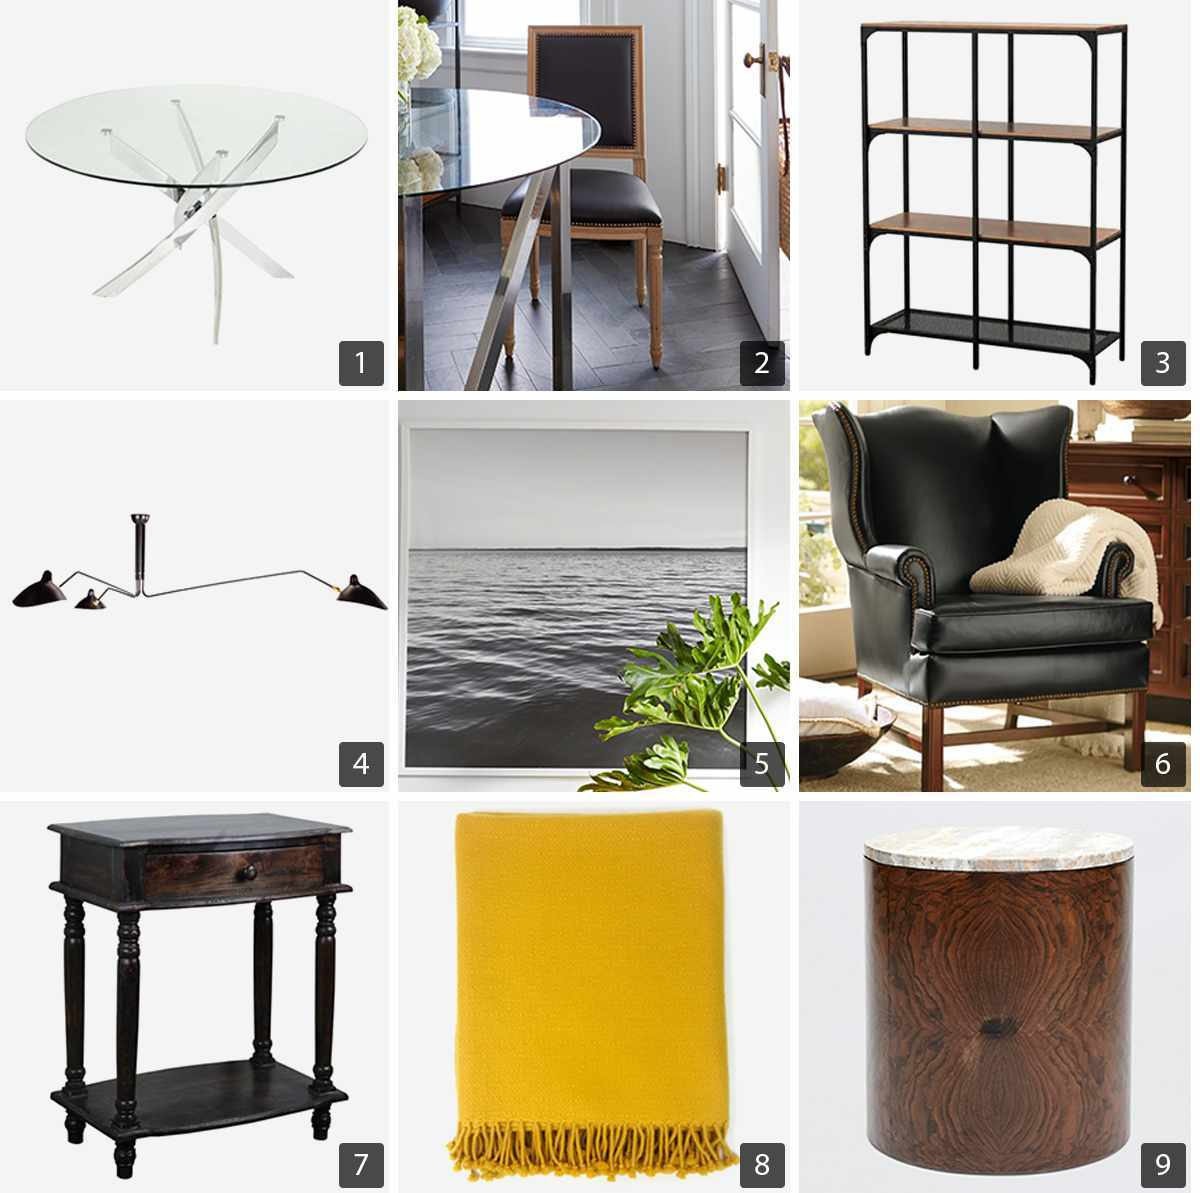 Collage of home products including glass coffee table, four-tier shelf, leather armchair, and yellow throw blanket photo